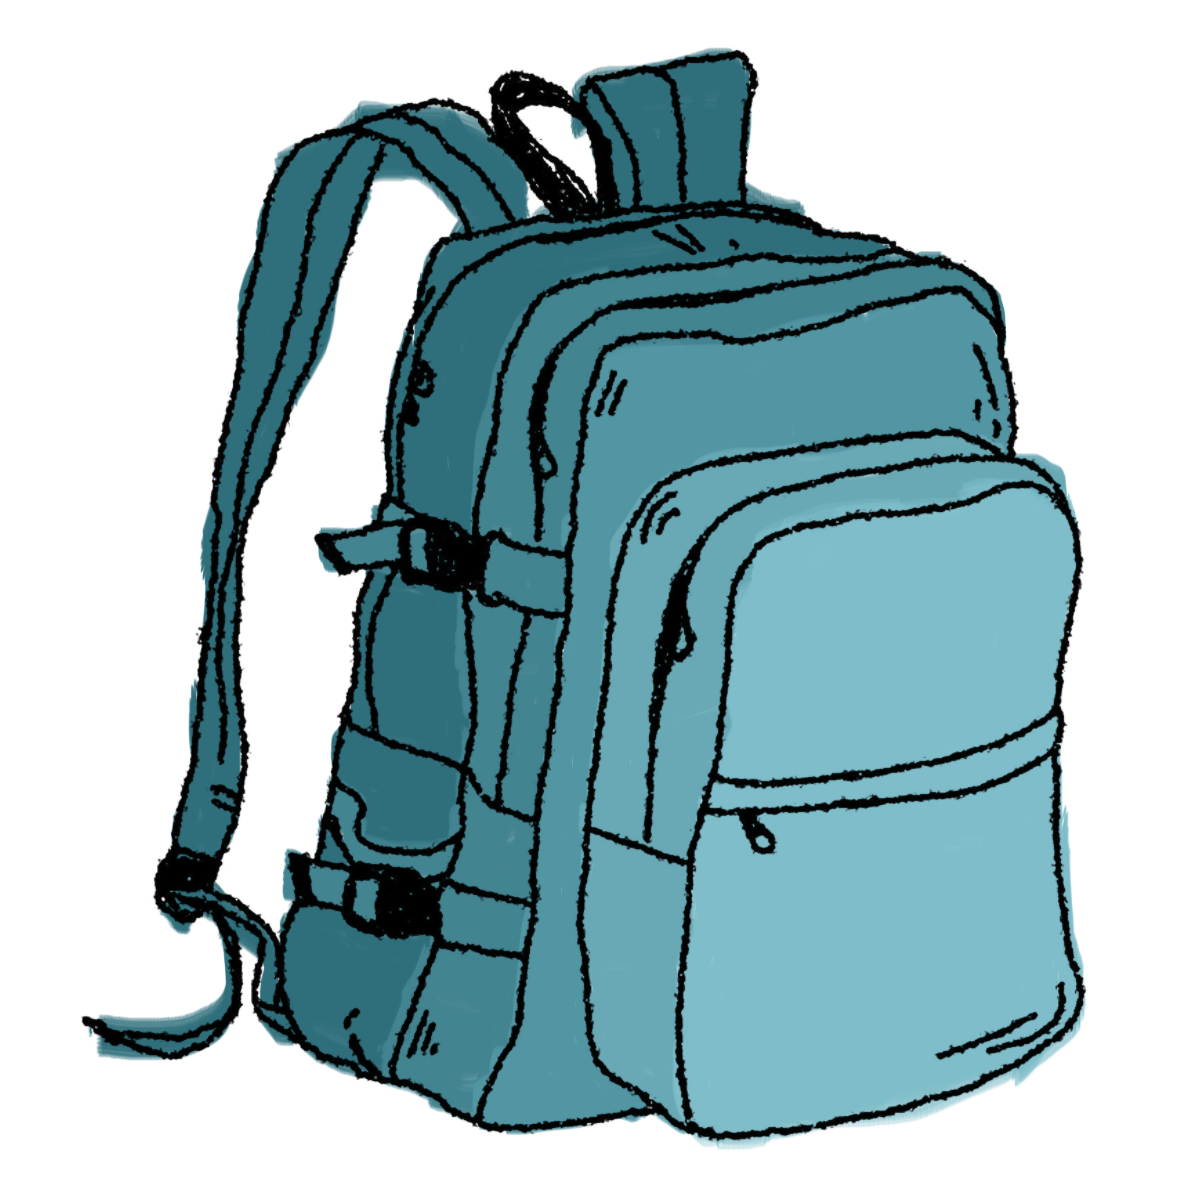 hiking backpack clip art free book bag pinterest hiking rh pinterest com backpacker clipart backpack clipart free